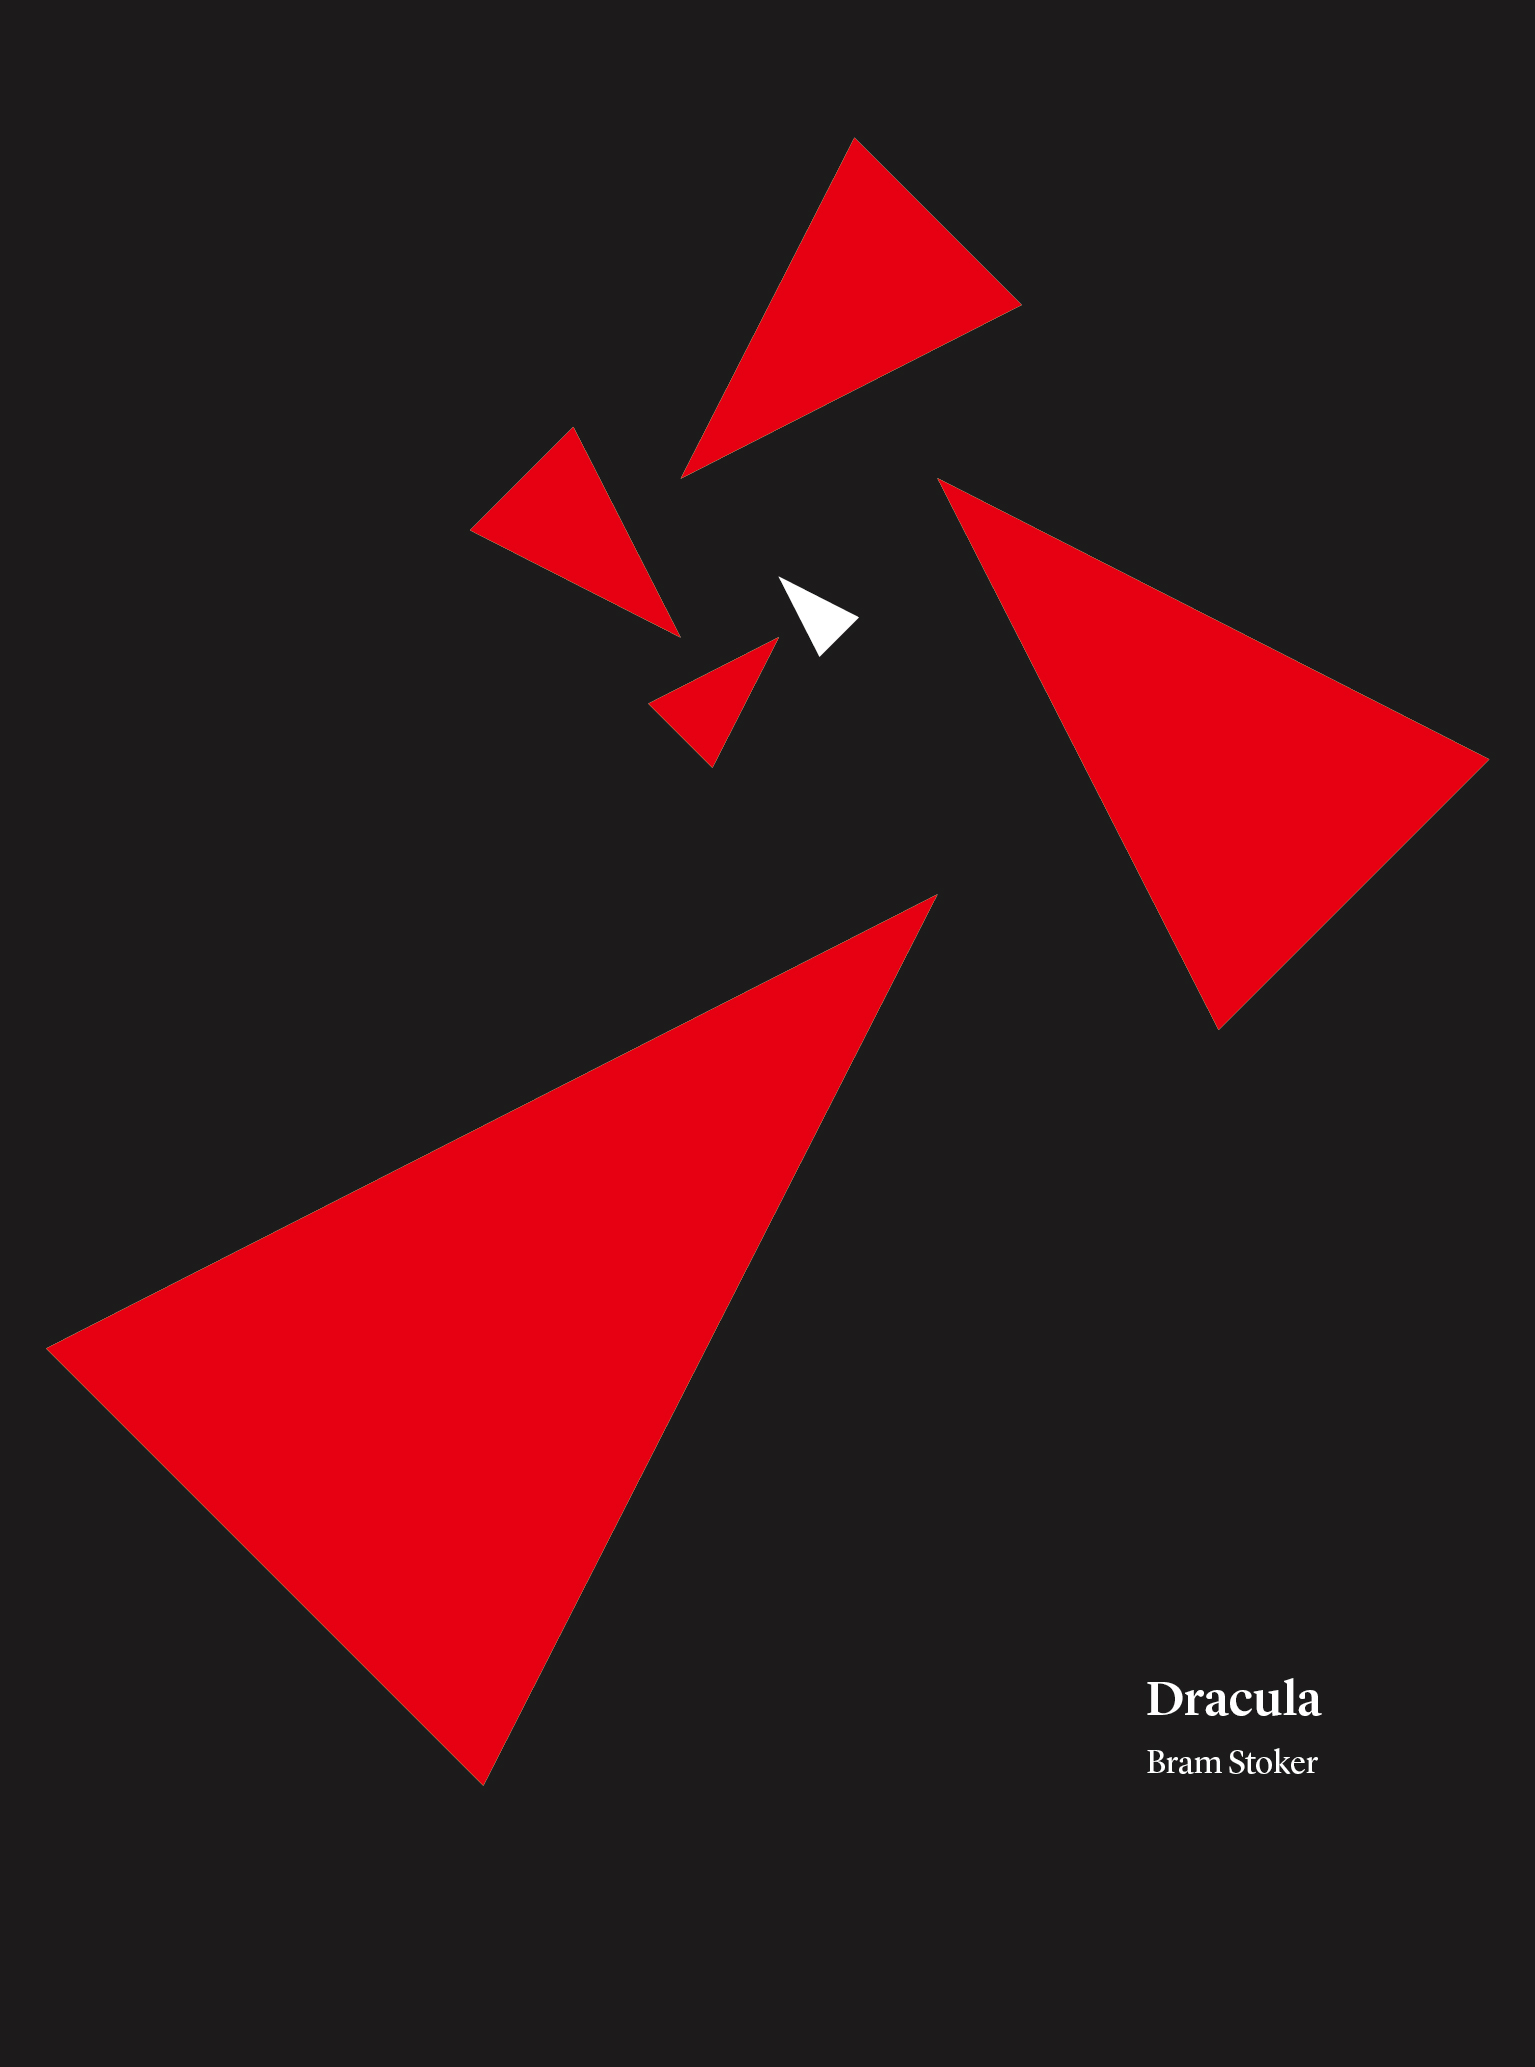 Dracula  - Tension, Sequence of events, victim, blood